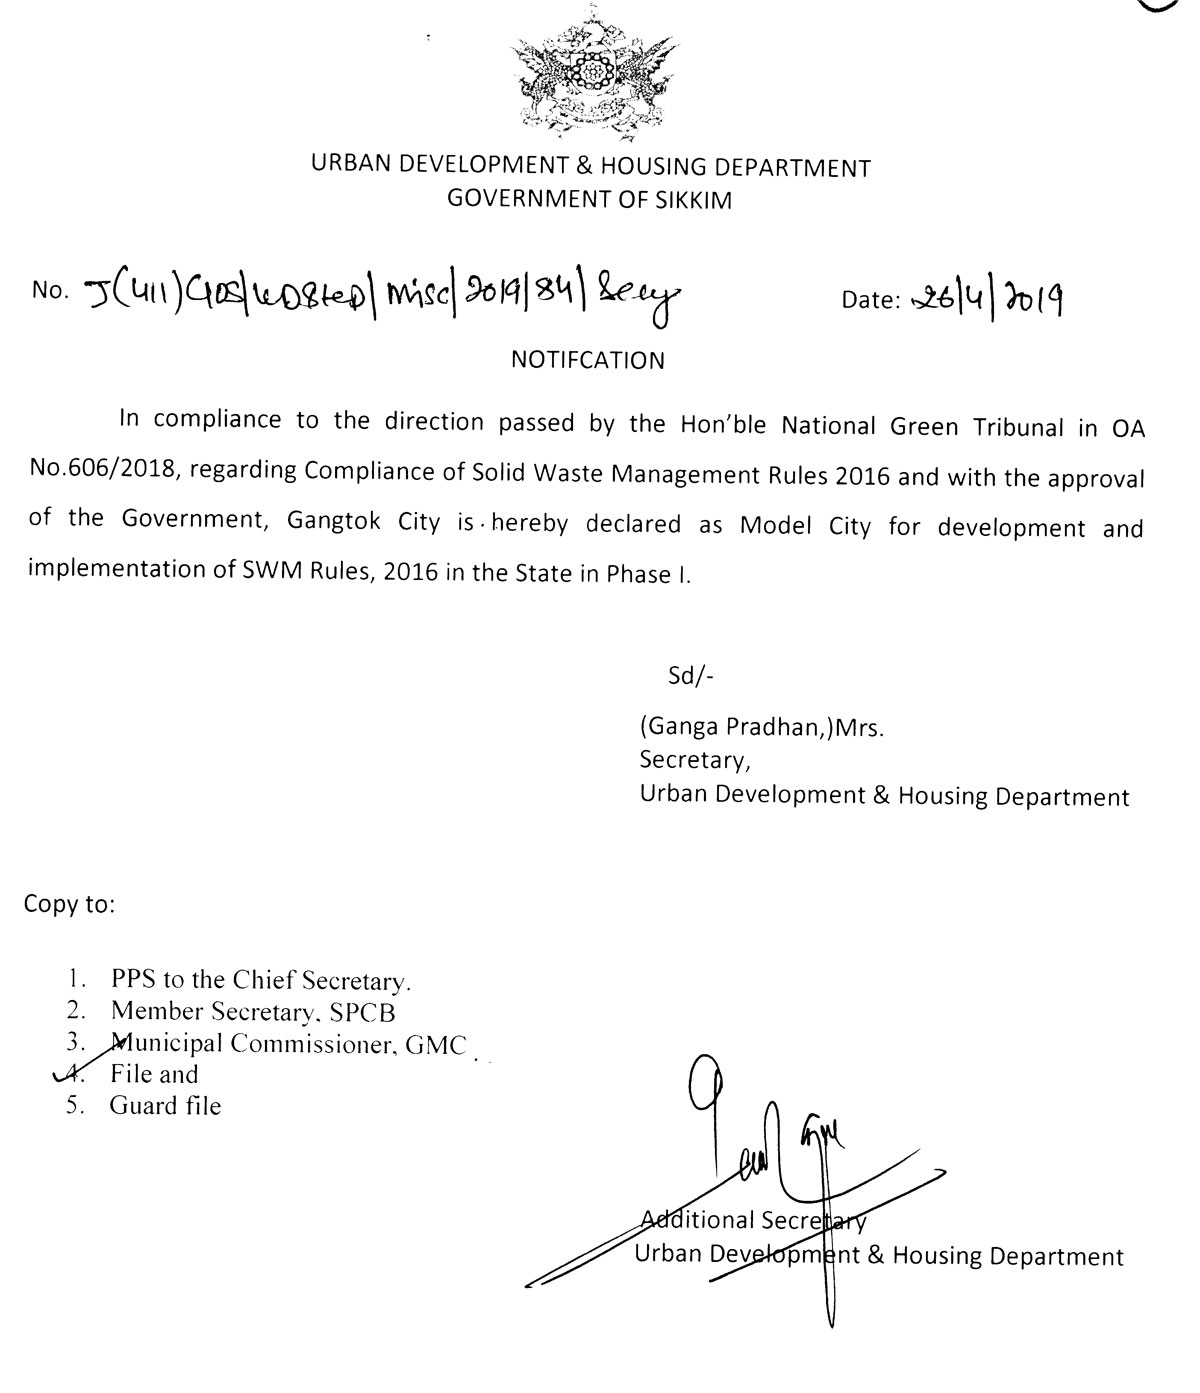 pollution air water noise gangtok declared as the model city of sikkim state for implementation fo  swm rules